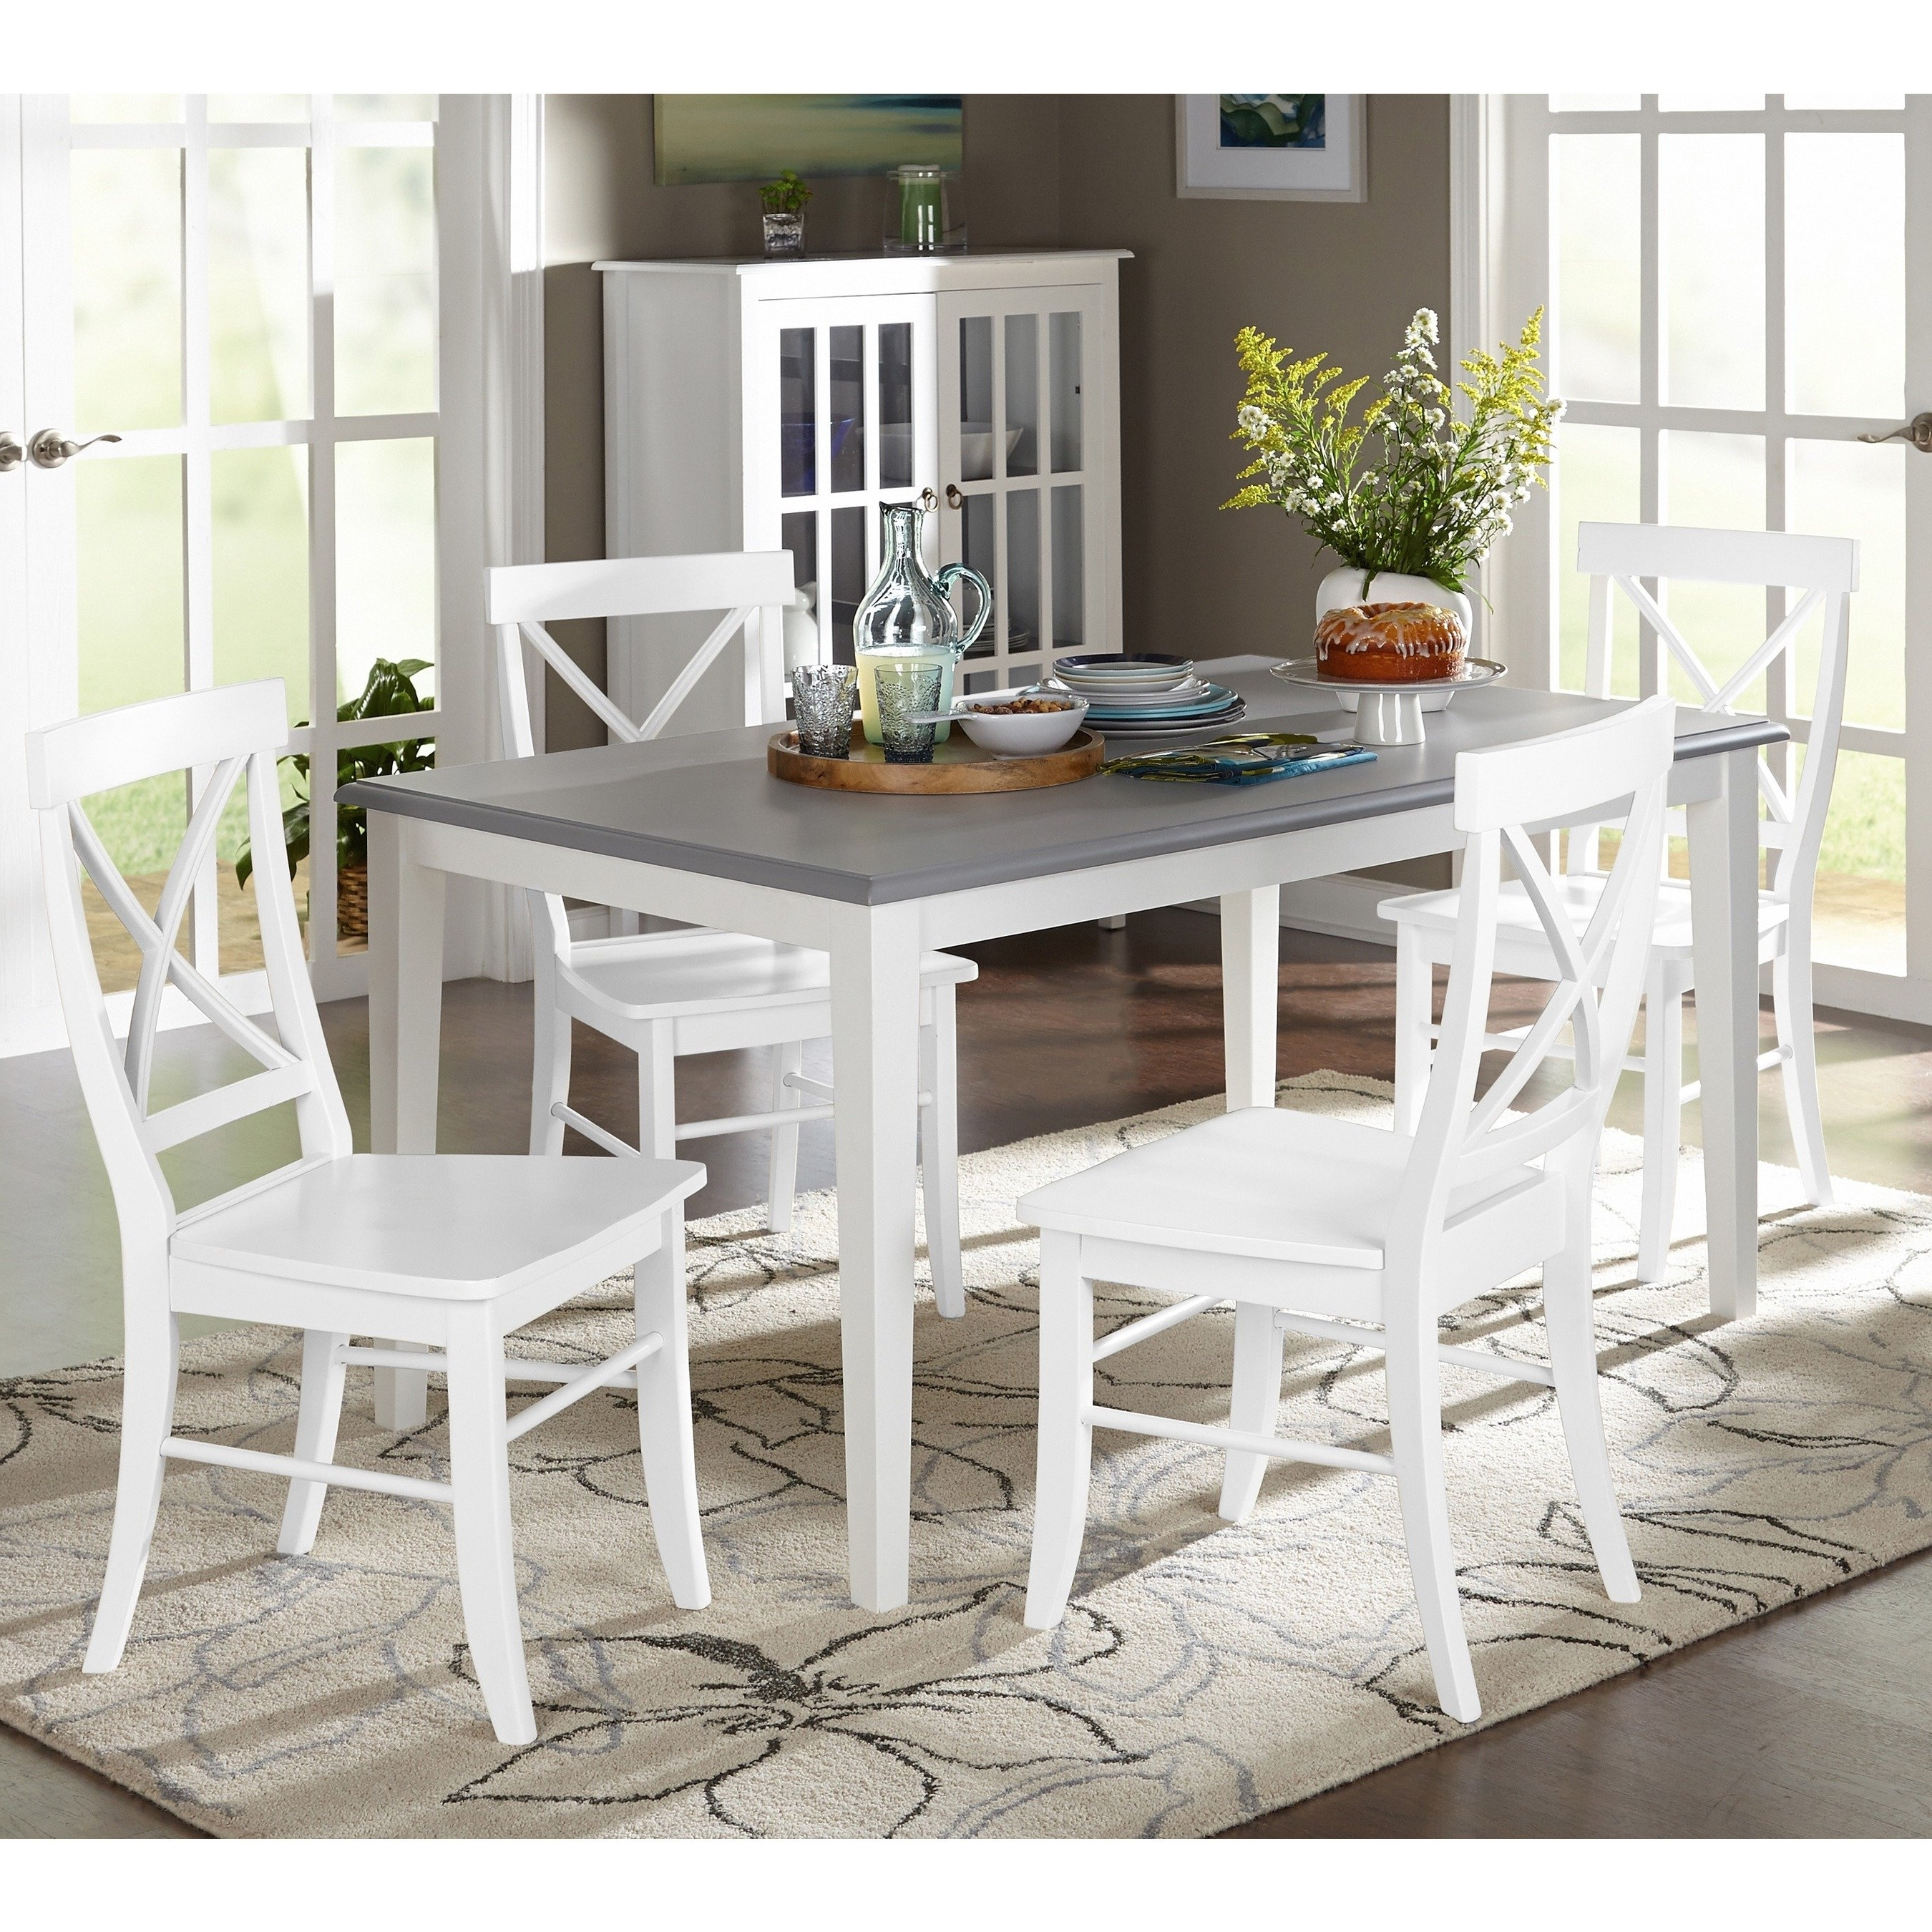 Laurent 5 Piece Round Dining Sets With Wood Chairs With Regard To 2018 Shop Simple Living 5 Piece Helena Dining Set – Free Shipping Today (View 12 of 25)